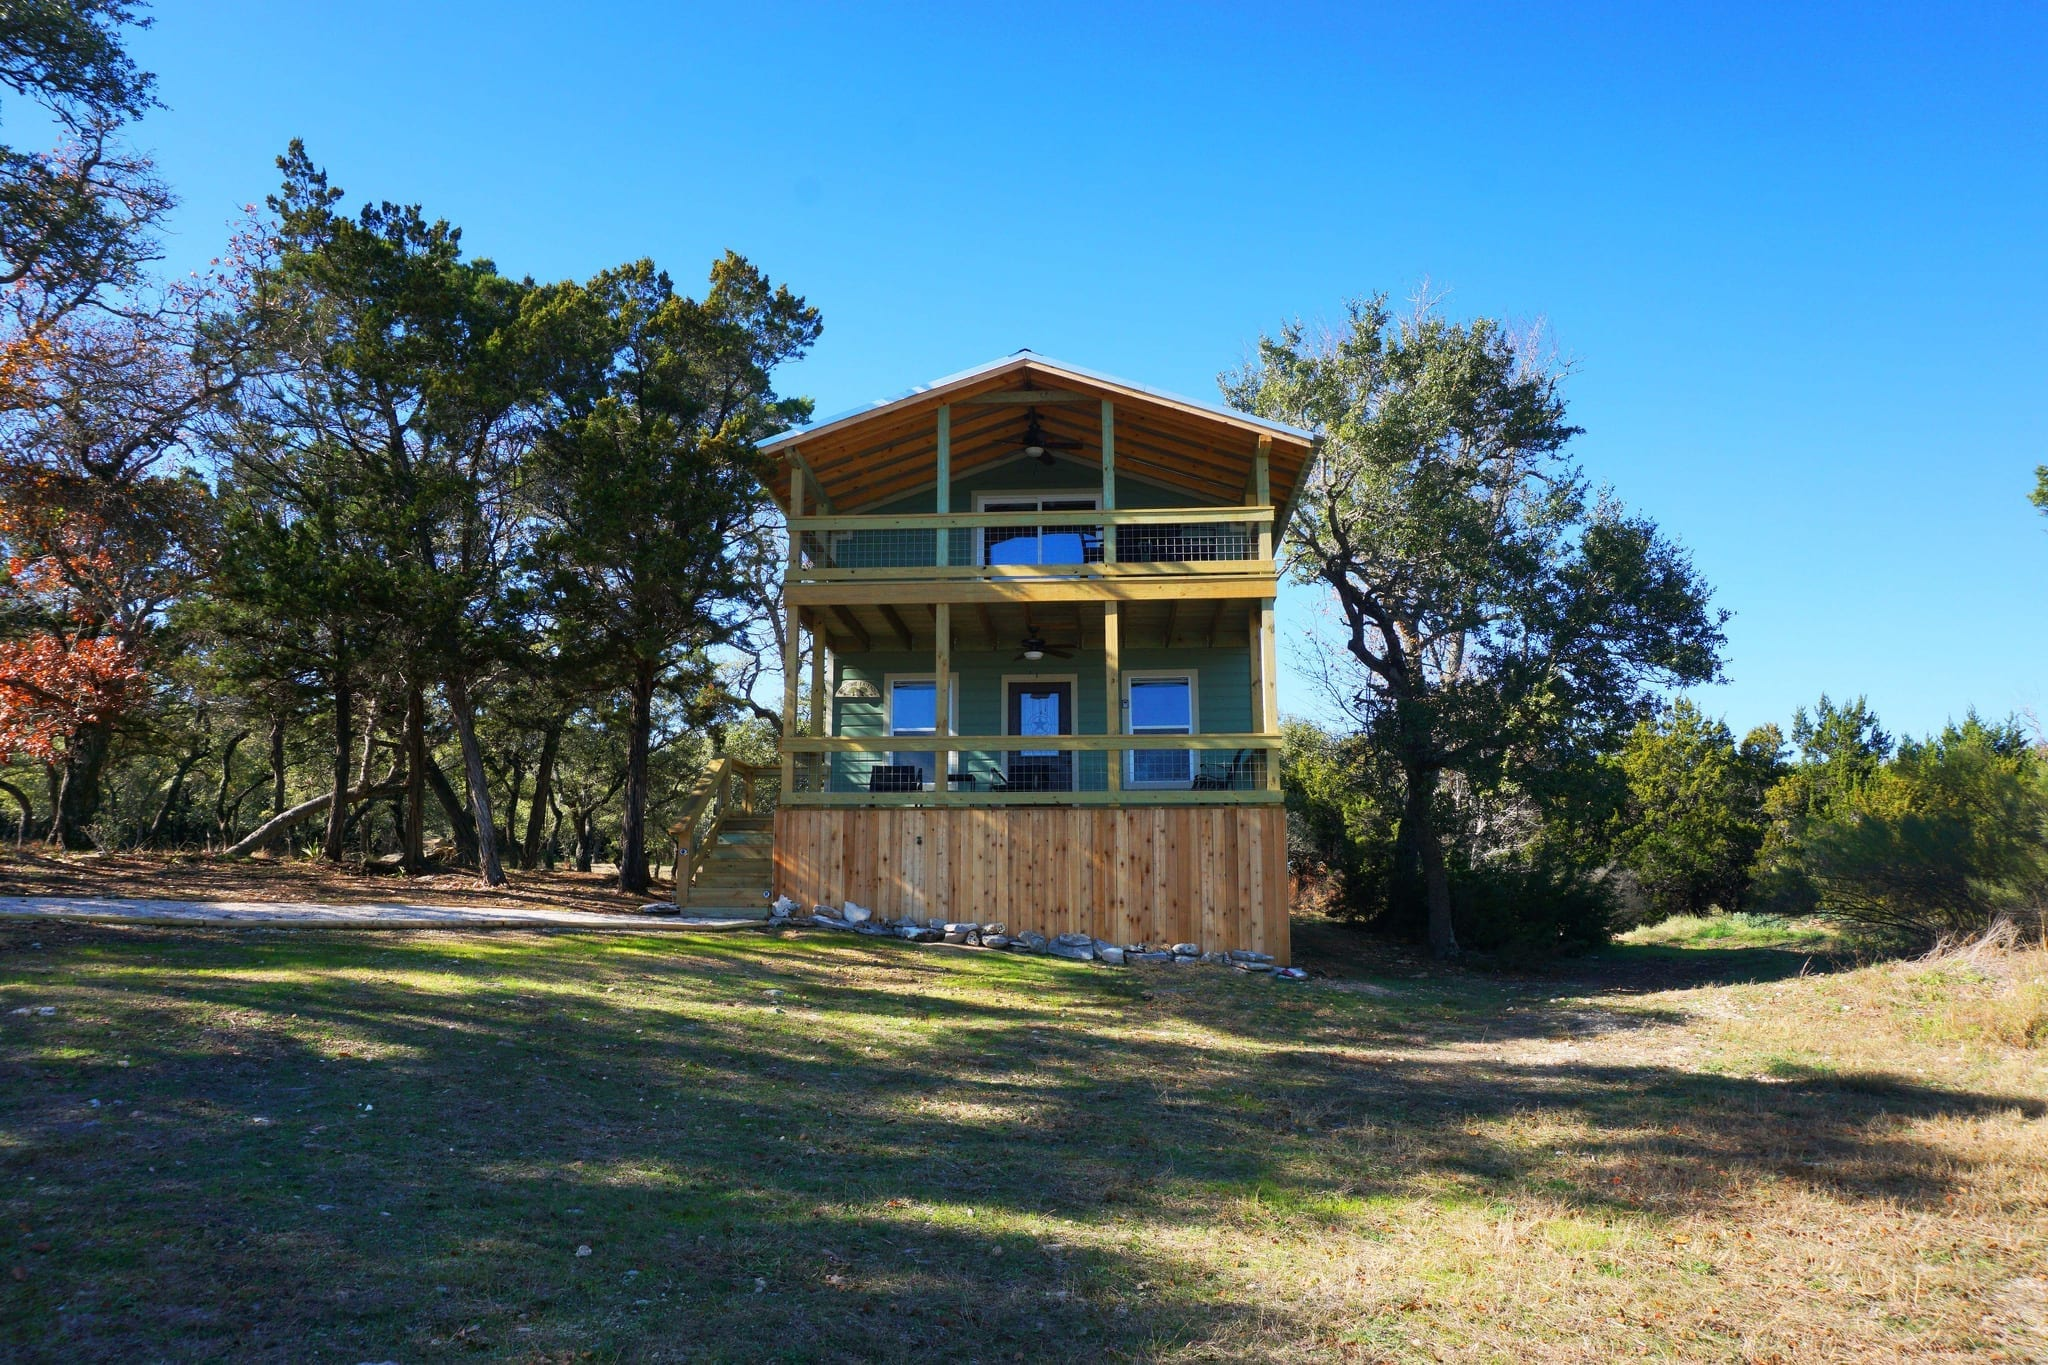 dmtx tx wimberley wayside realty sold texas estate real drive cabins